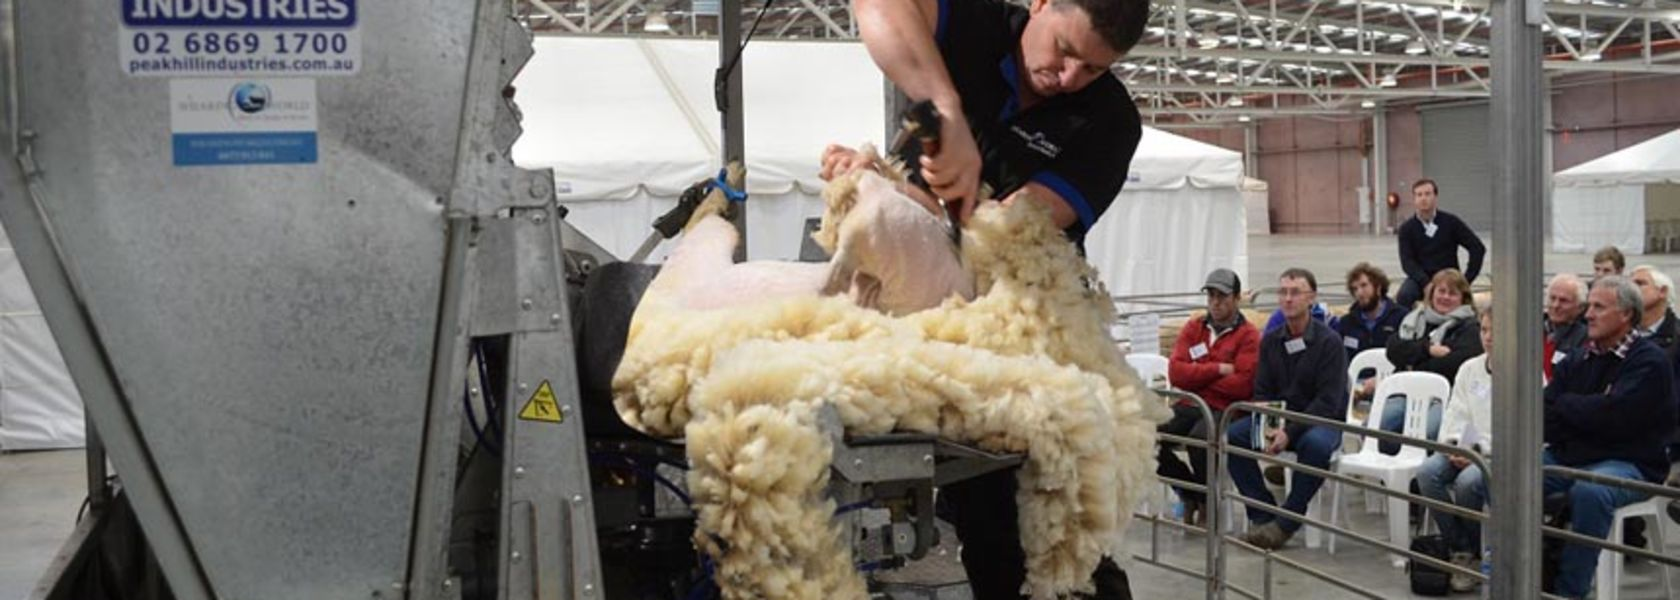 Shearing without bending over